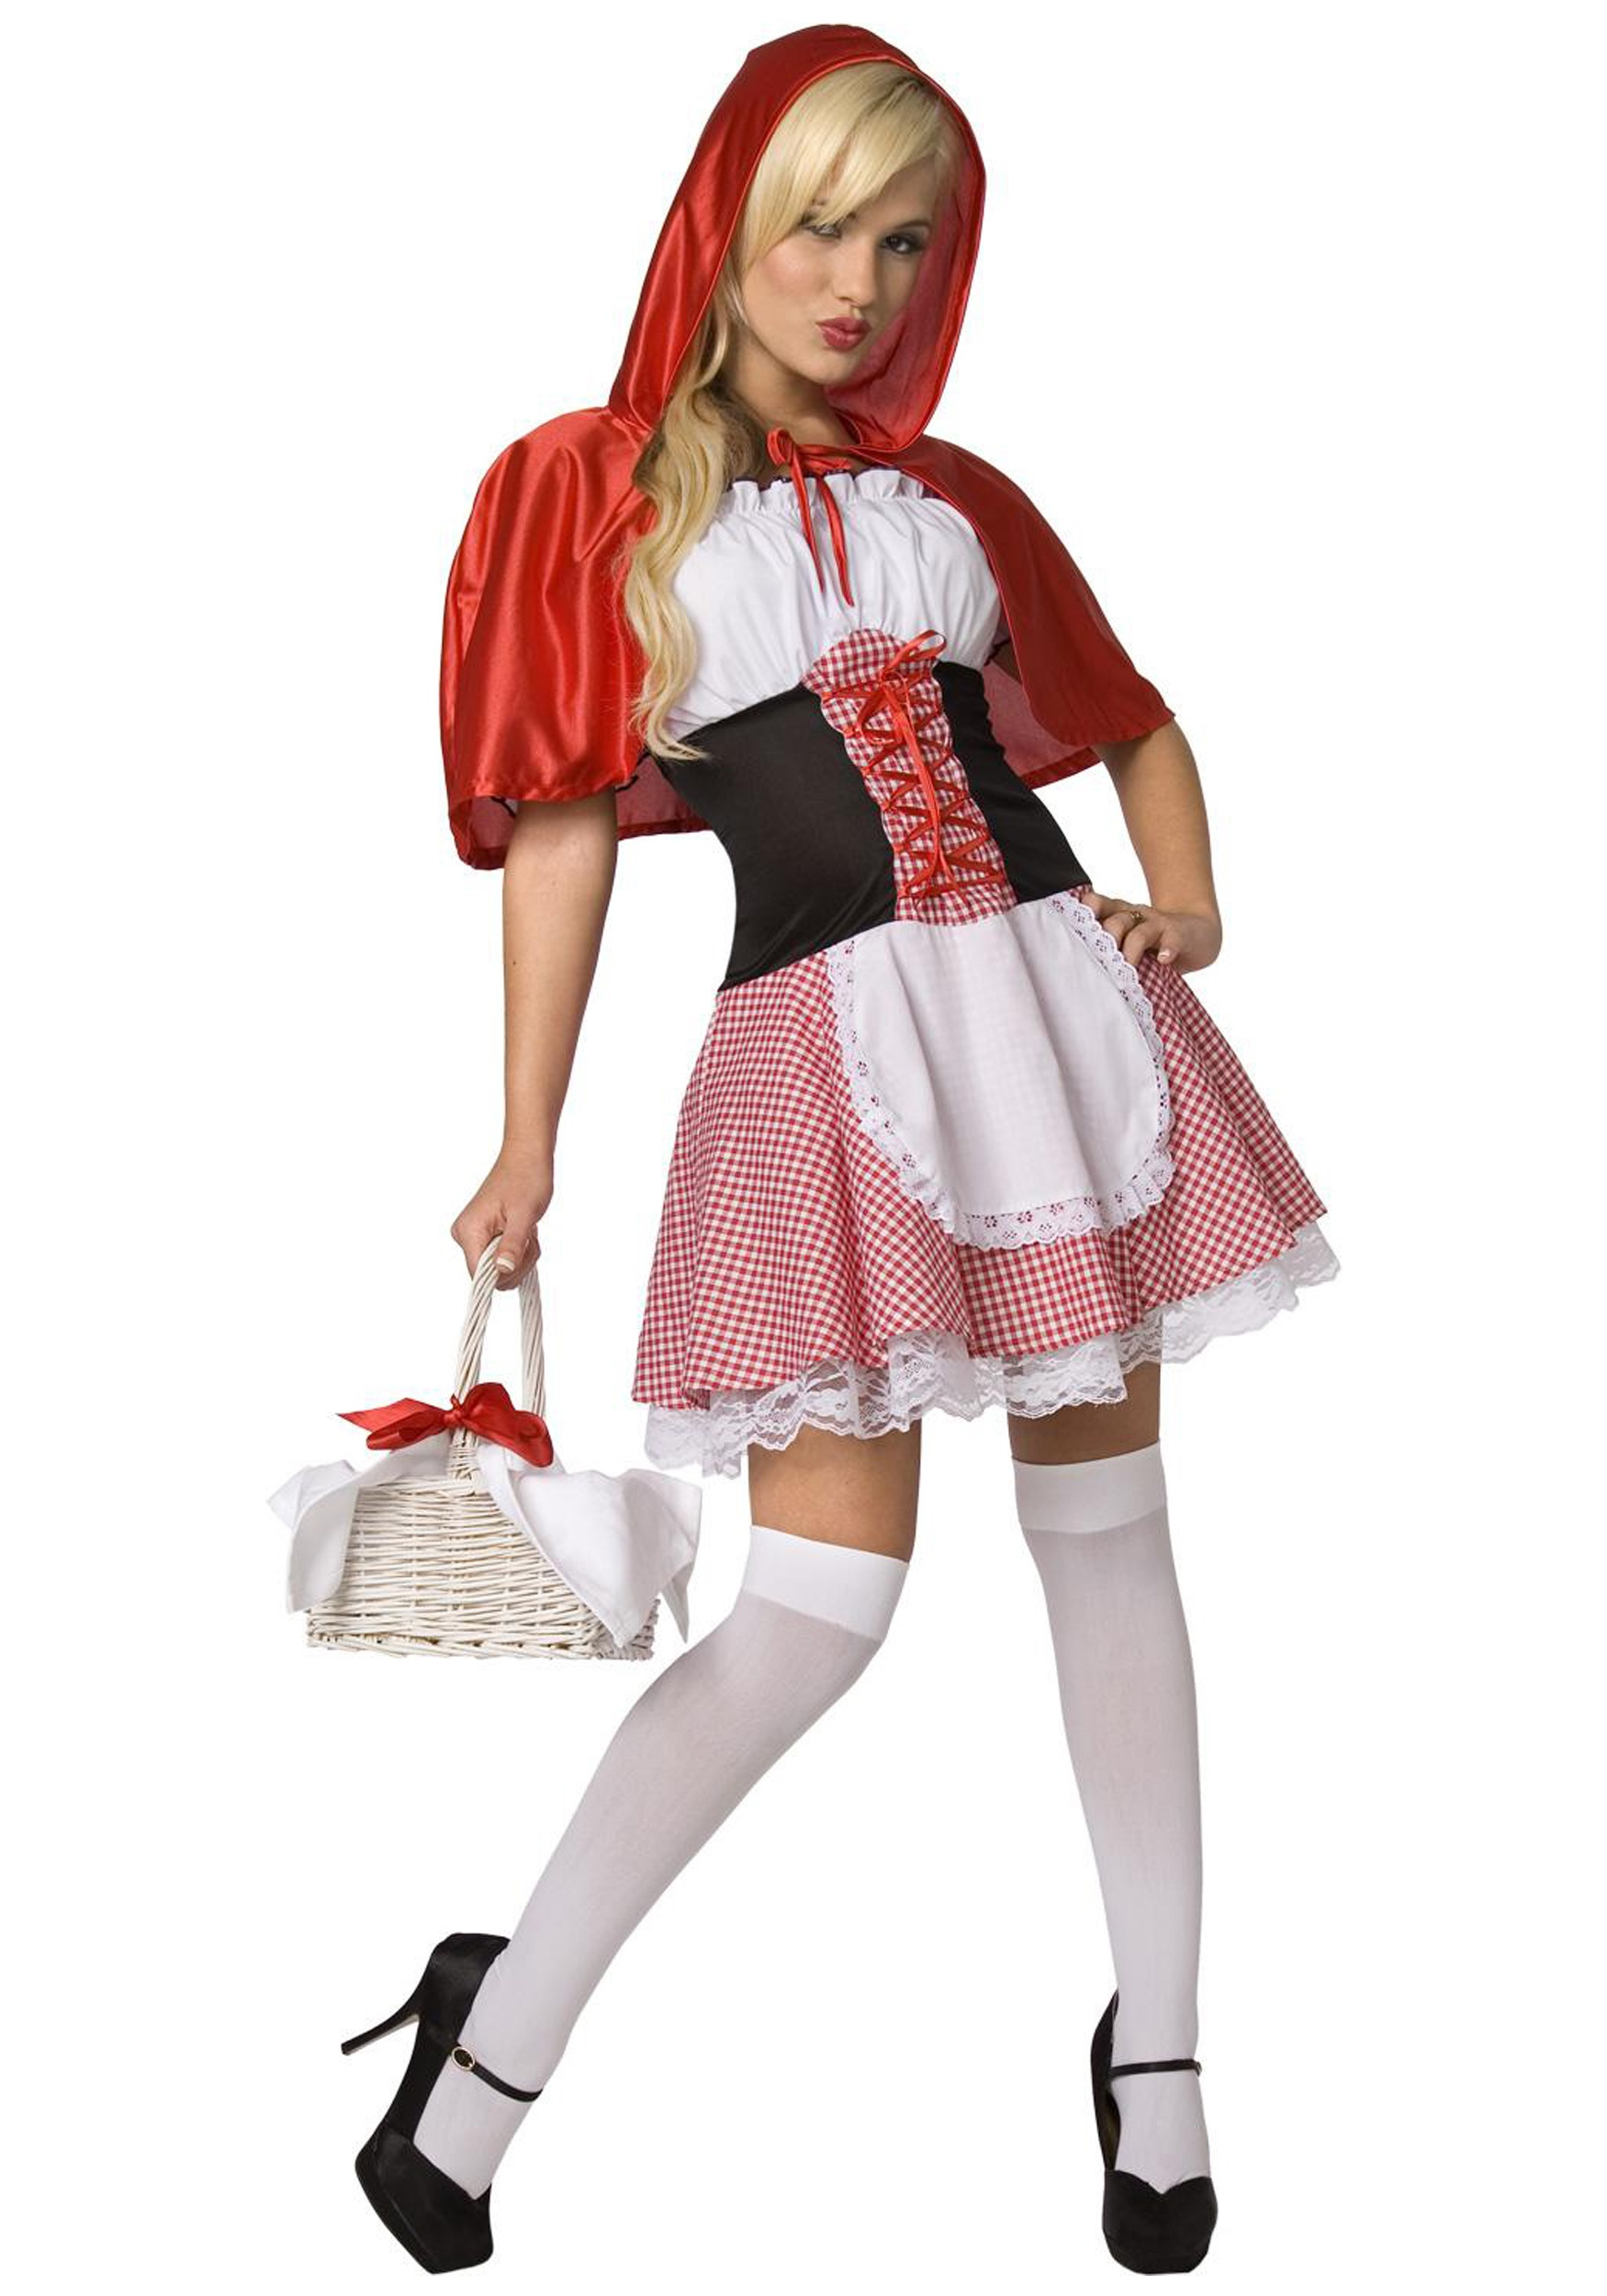 INOpets.com Anything for Pets Parents & Their Pets Sexy Red Riding Hood Costume